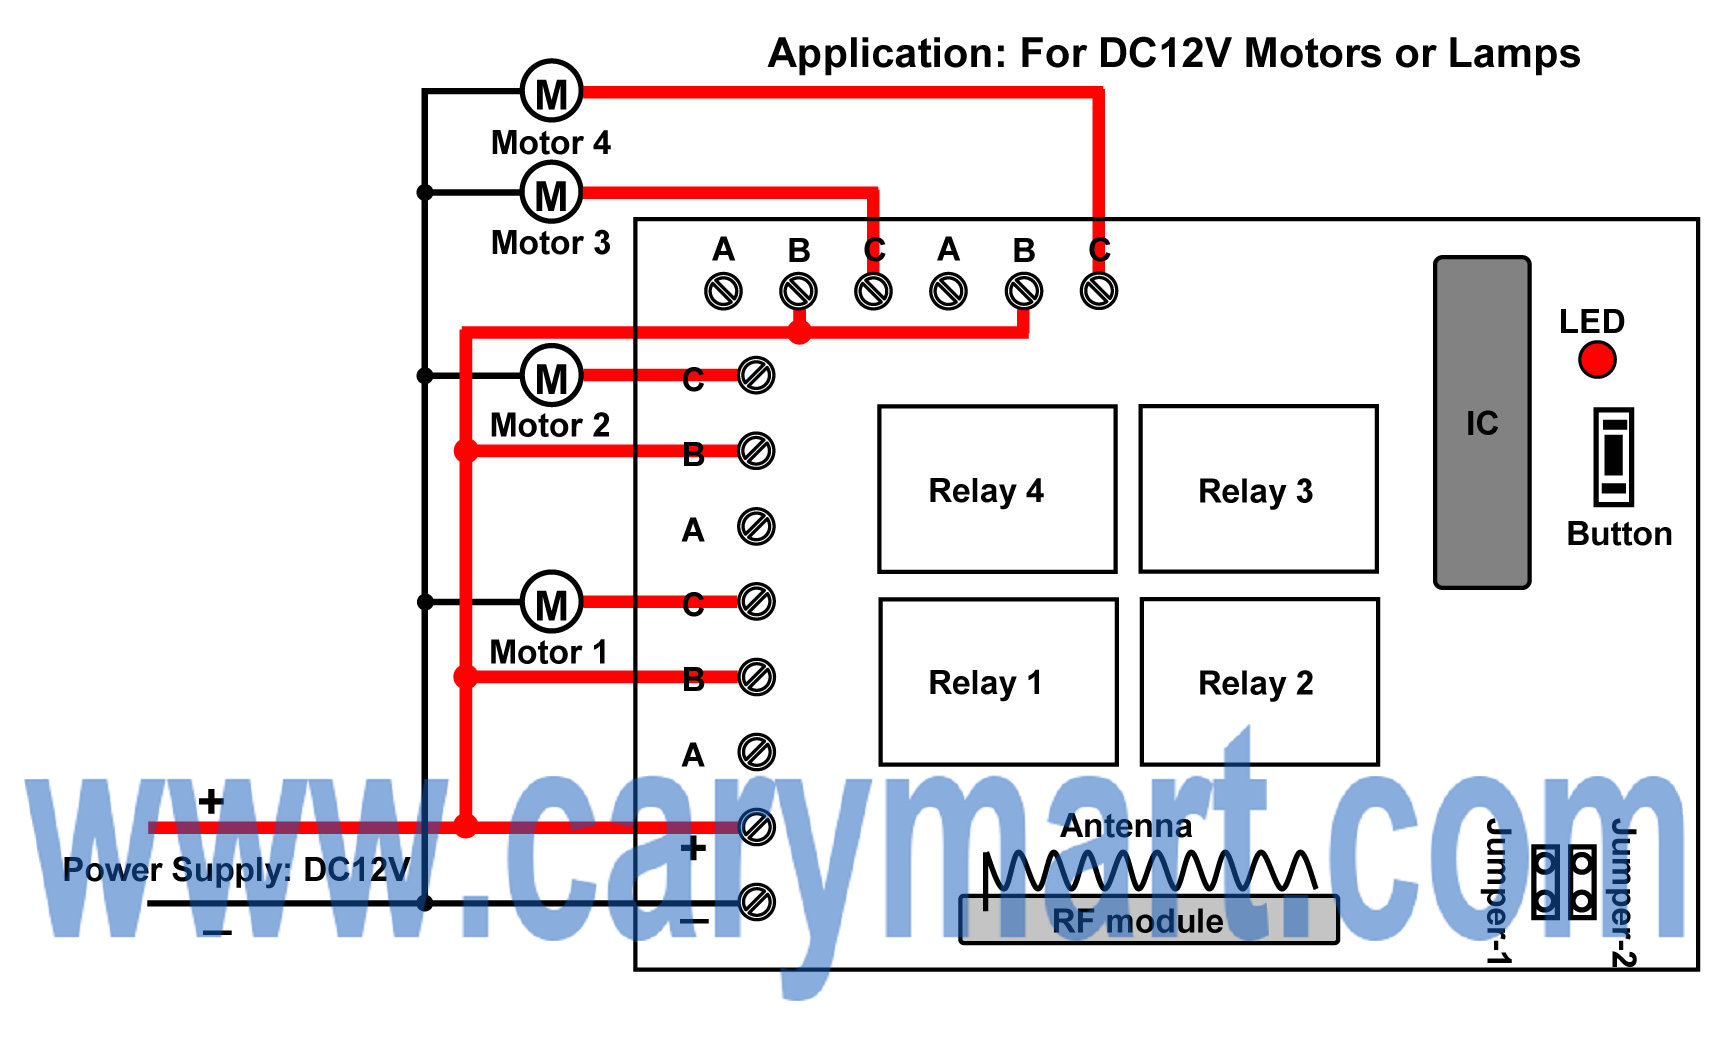 hight resolution of 702 dedicated remote control transmitter receiver integrated http wwwturborx7com images technediagram2jpg